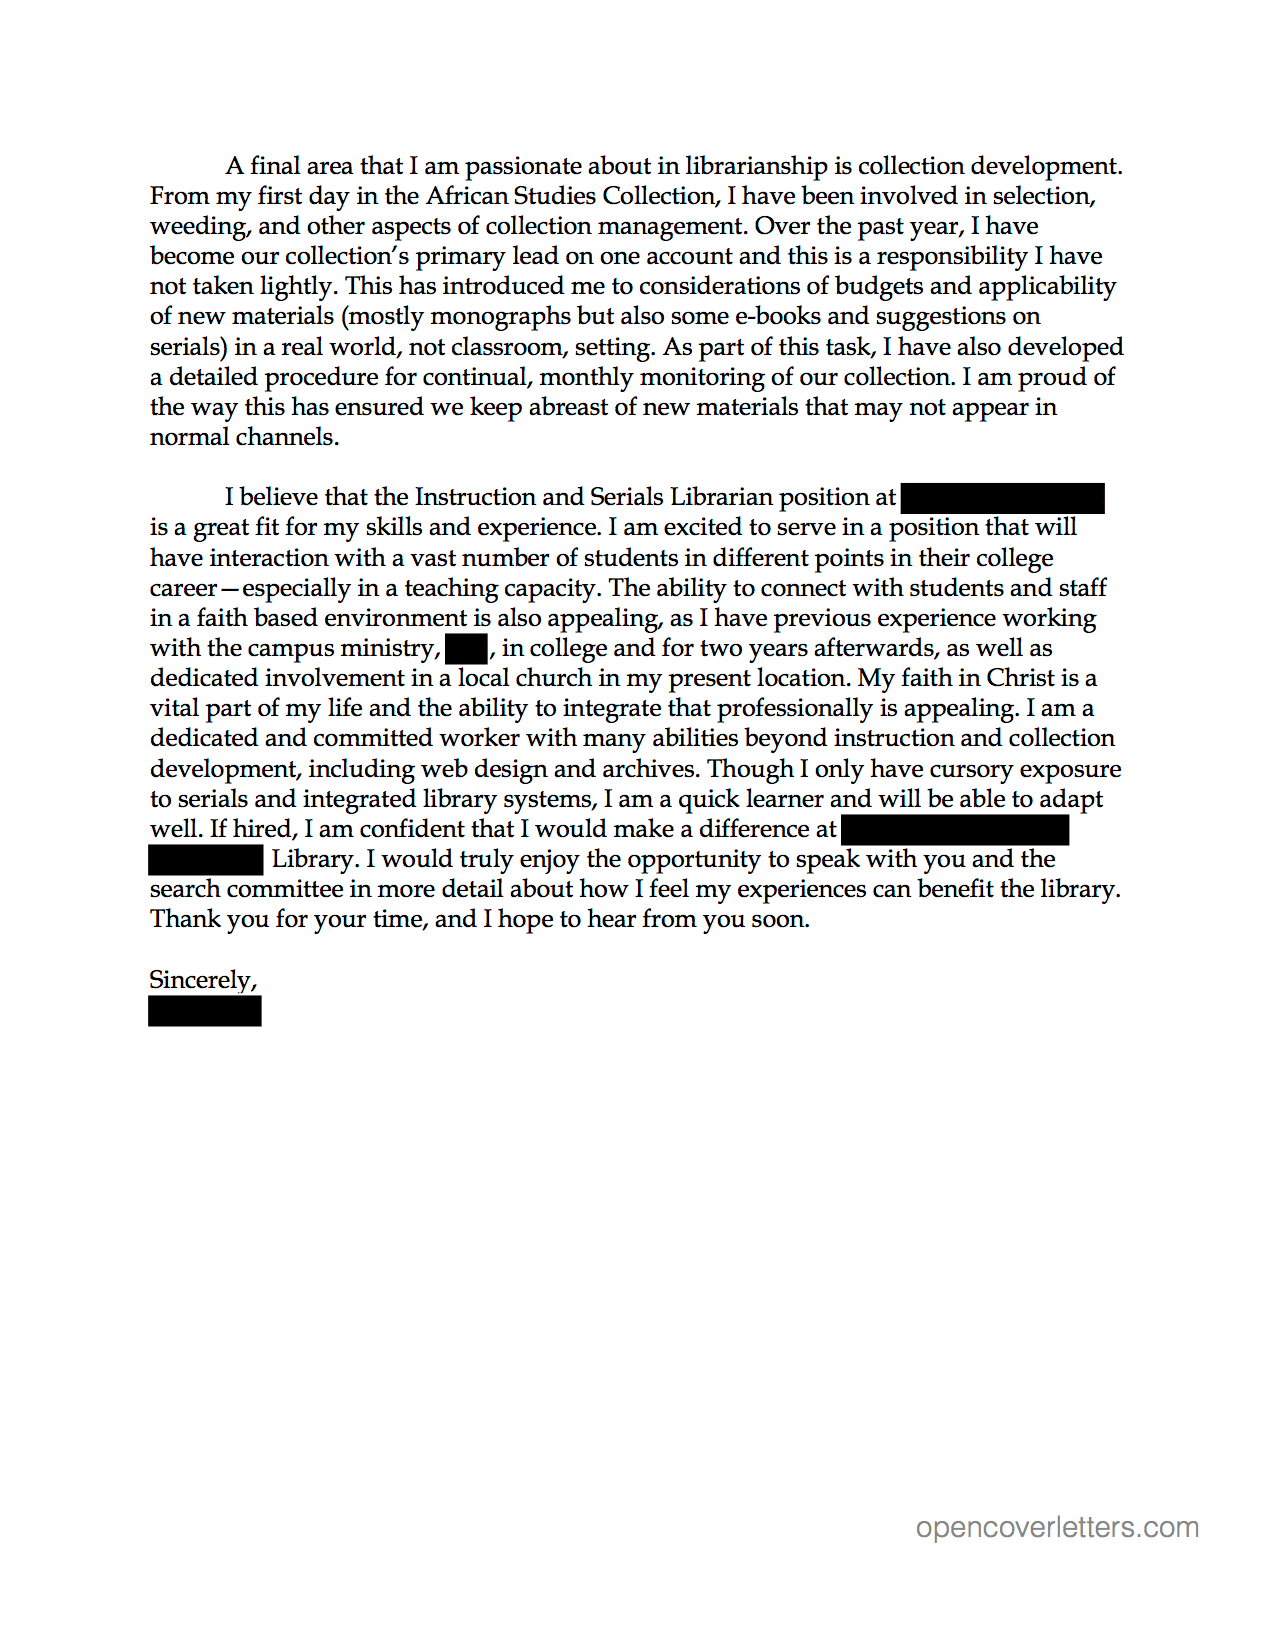 Instruction and Serials Librarian cover letter  Open Cover Letters